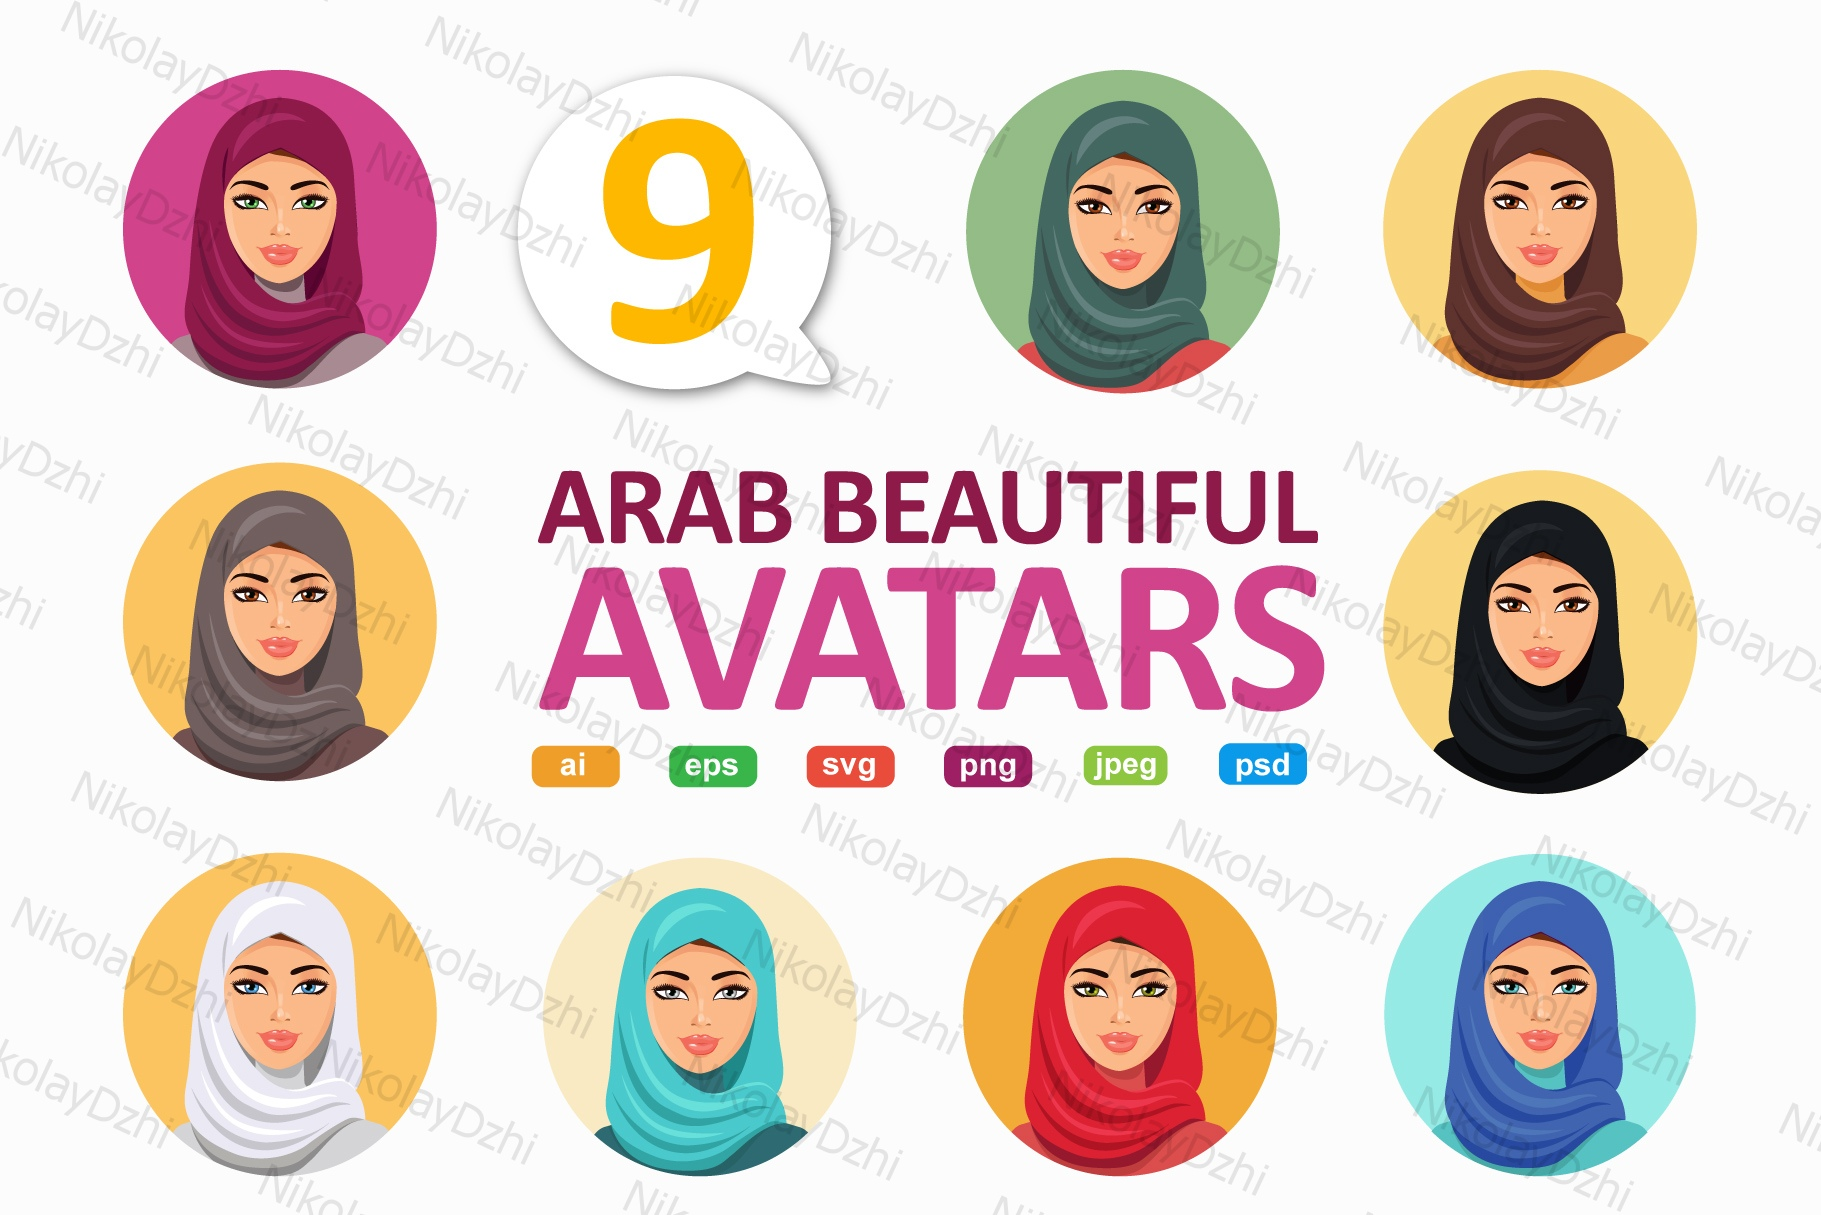 Download Free Arab Women Avatars Middle Eastern Avatar Graphic By Niko Dzhi for Cricut Explore, Silhouette and other cutting machines.